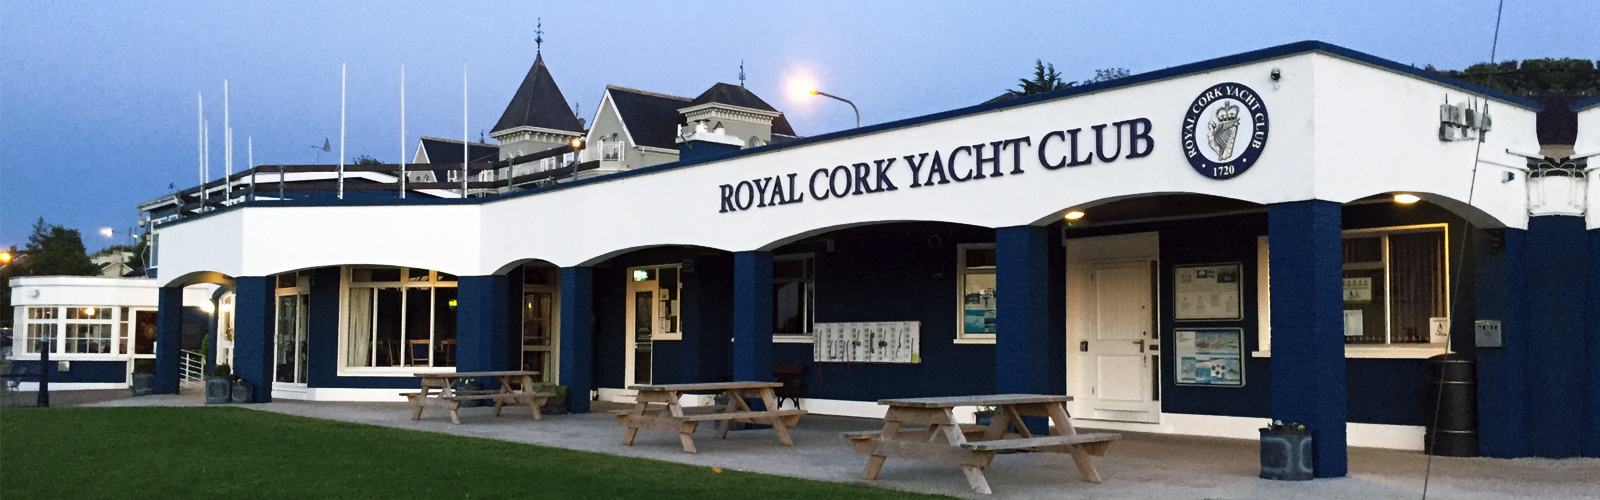 "Based in Crosshaven, Cork, we are the oldest yacht club in the world <a href=""http://www.royalcork.com/club-history/"">..Read more </a>"